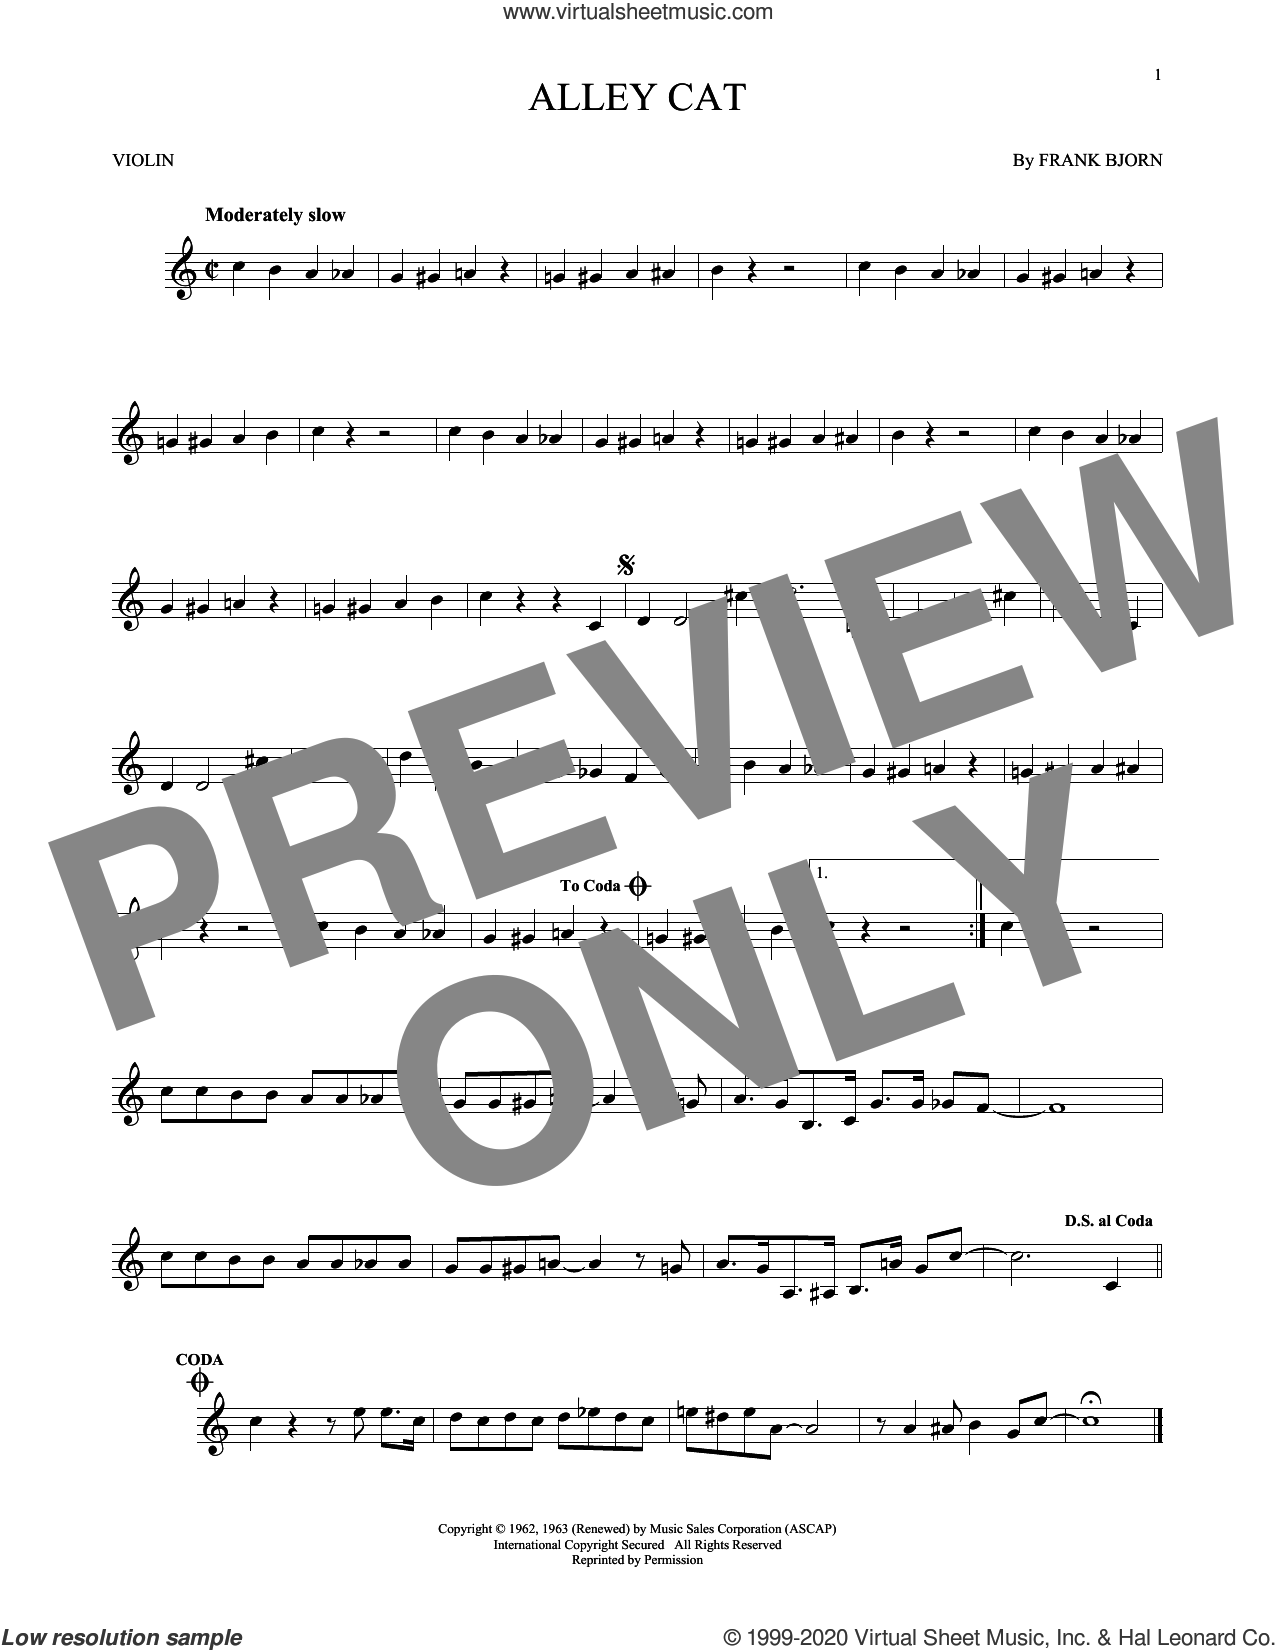 Alley Cat sheet music for violin solo by Bent Fabric and Frank Bjorn, intermediate skill level